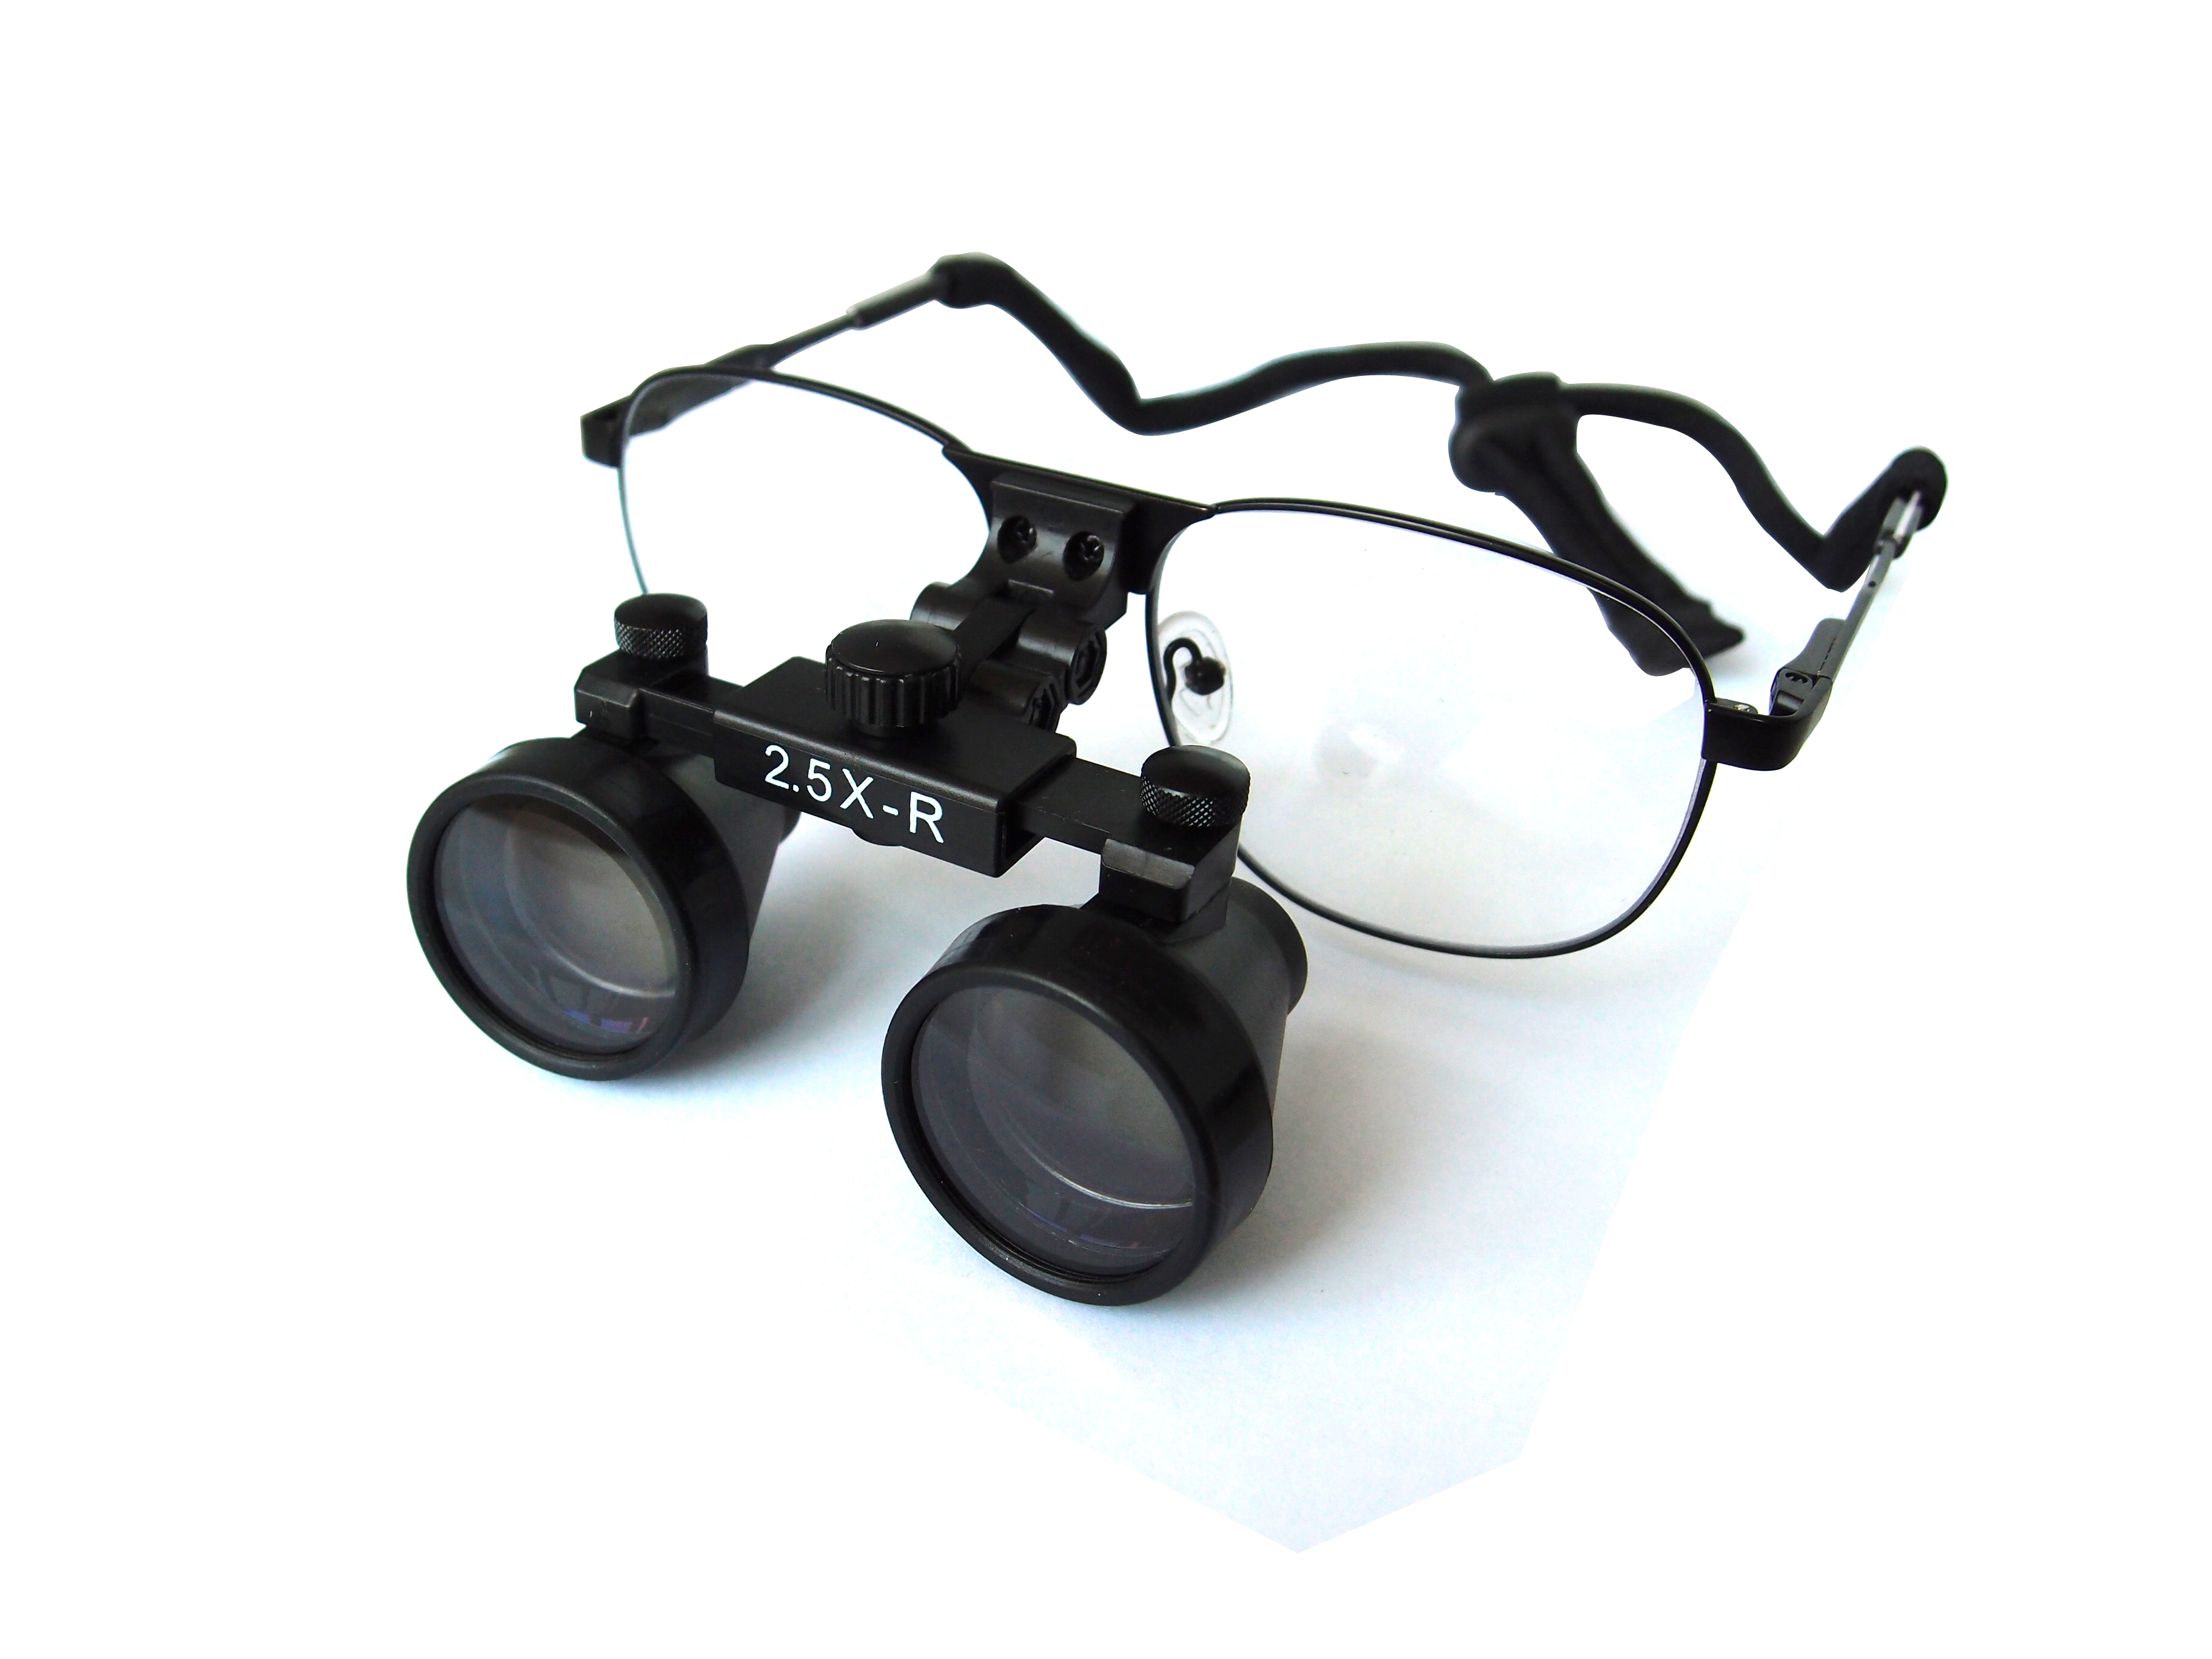 Micare JD2100 Lampe Frontale avec Loupes 2.5 X